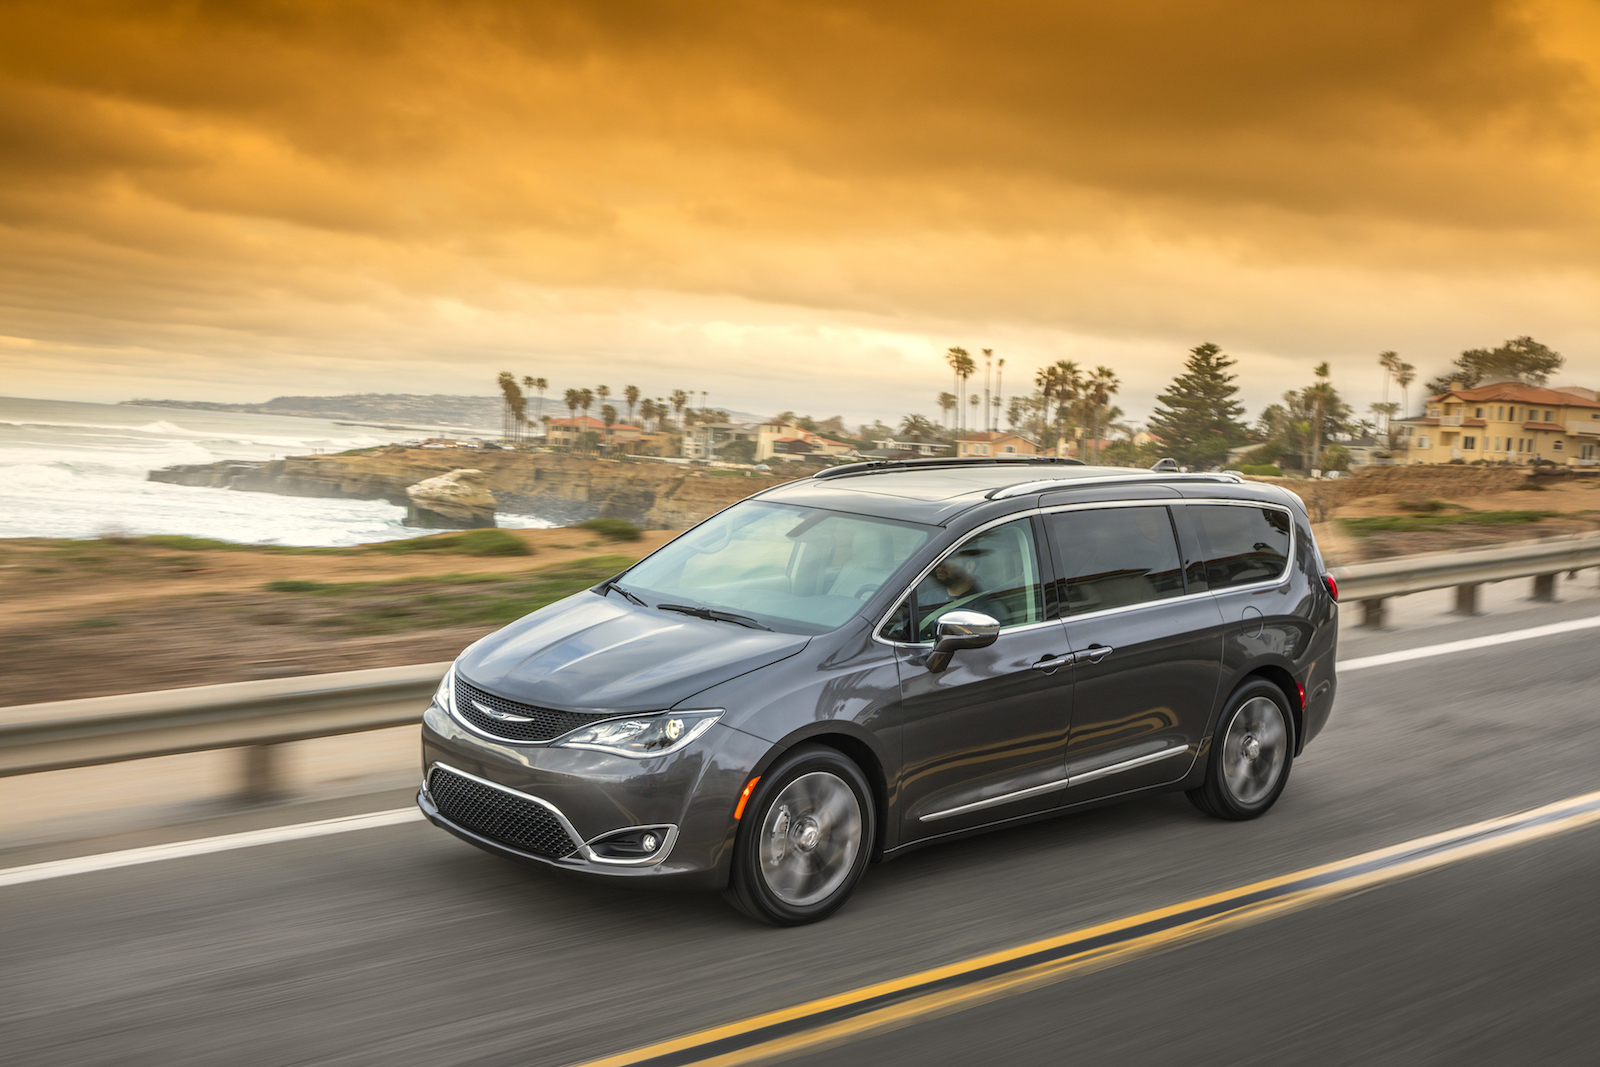 2017 chrysler pacifica review ratings specs prices and photos the car connection. Black Bedroom Furniture Sets. Home Design Ideas